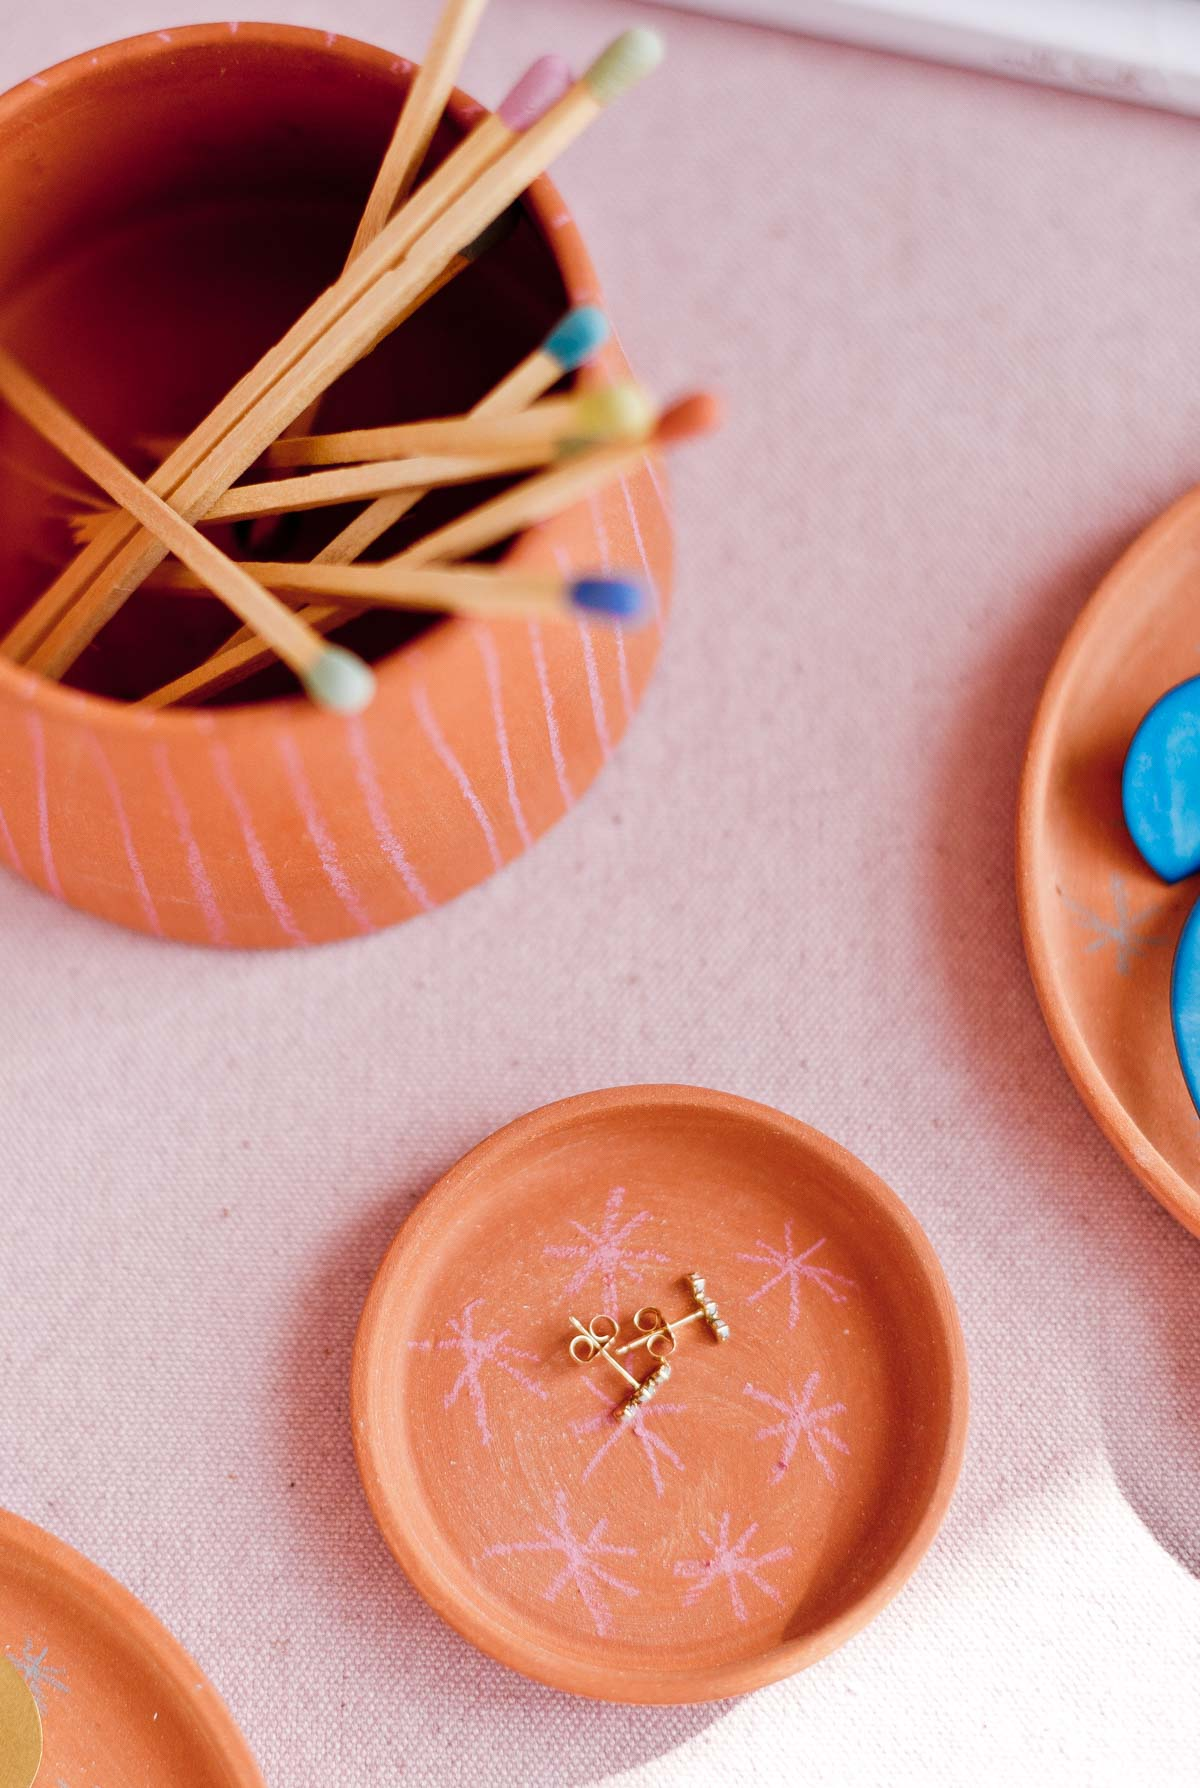 Let's Dish: A Simple DIY Jewelry Dish / Trinket Tray. #jewelry #diy #diyhome #terracotta #homedecor